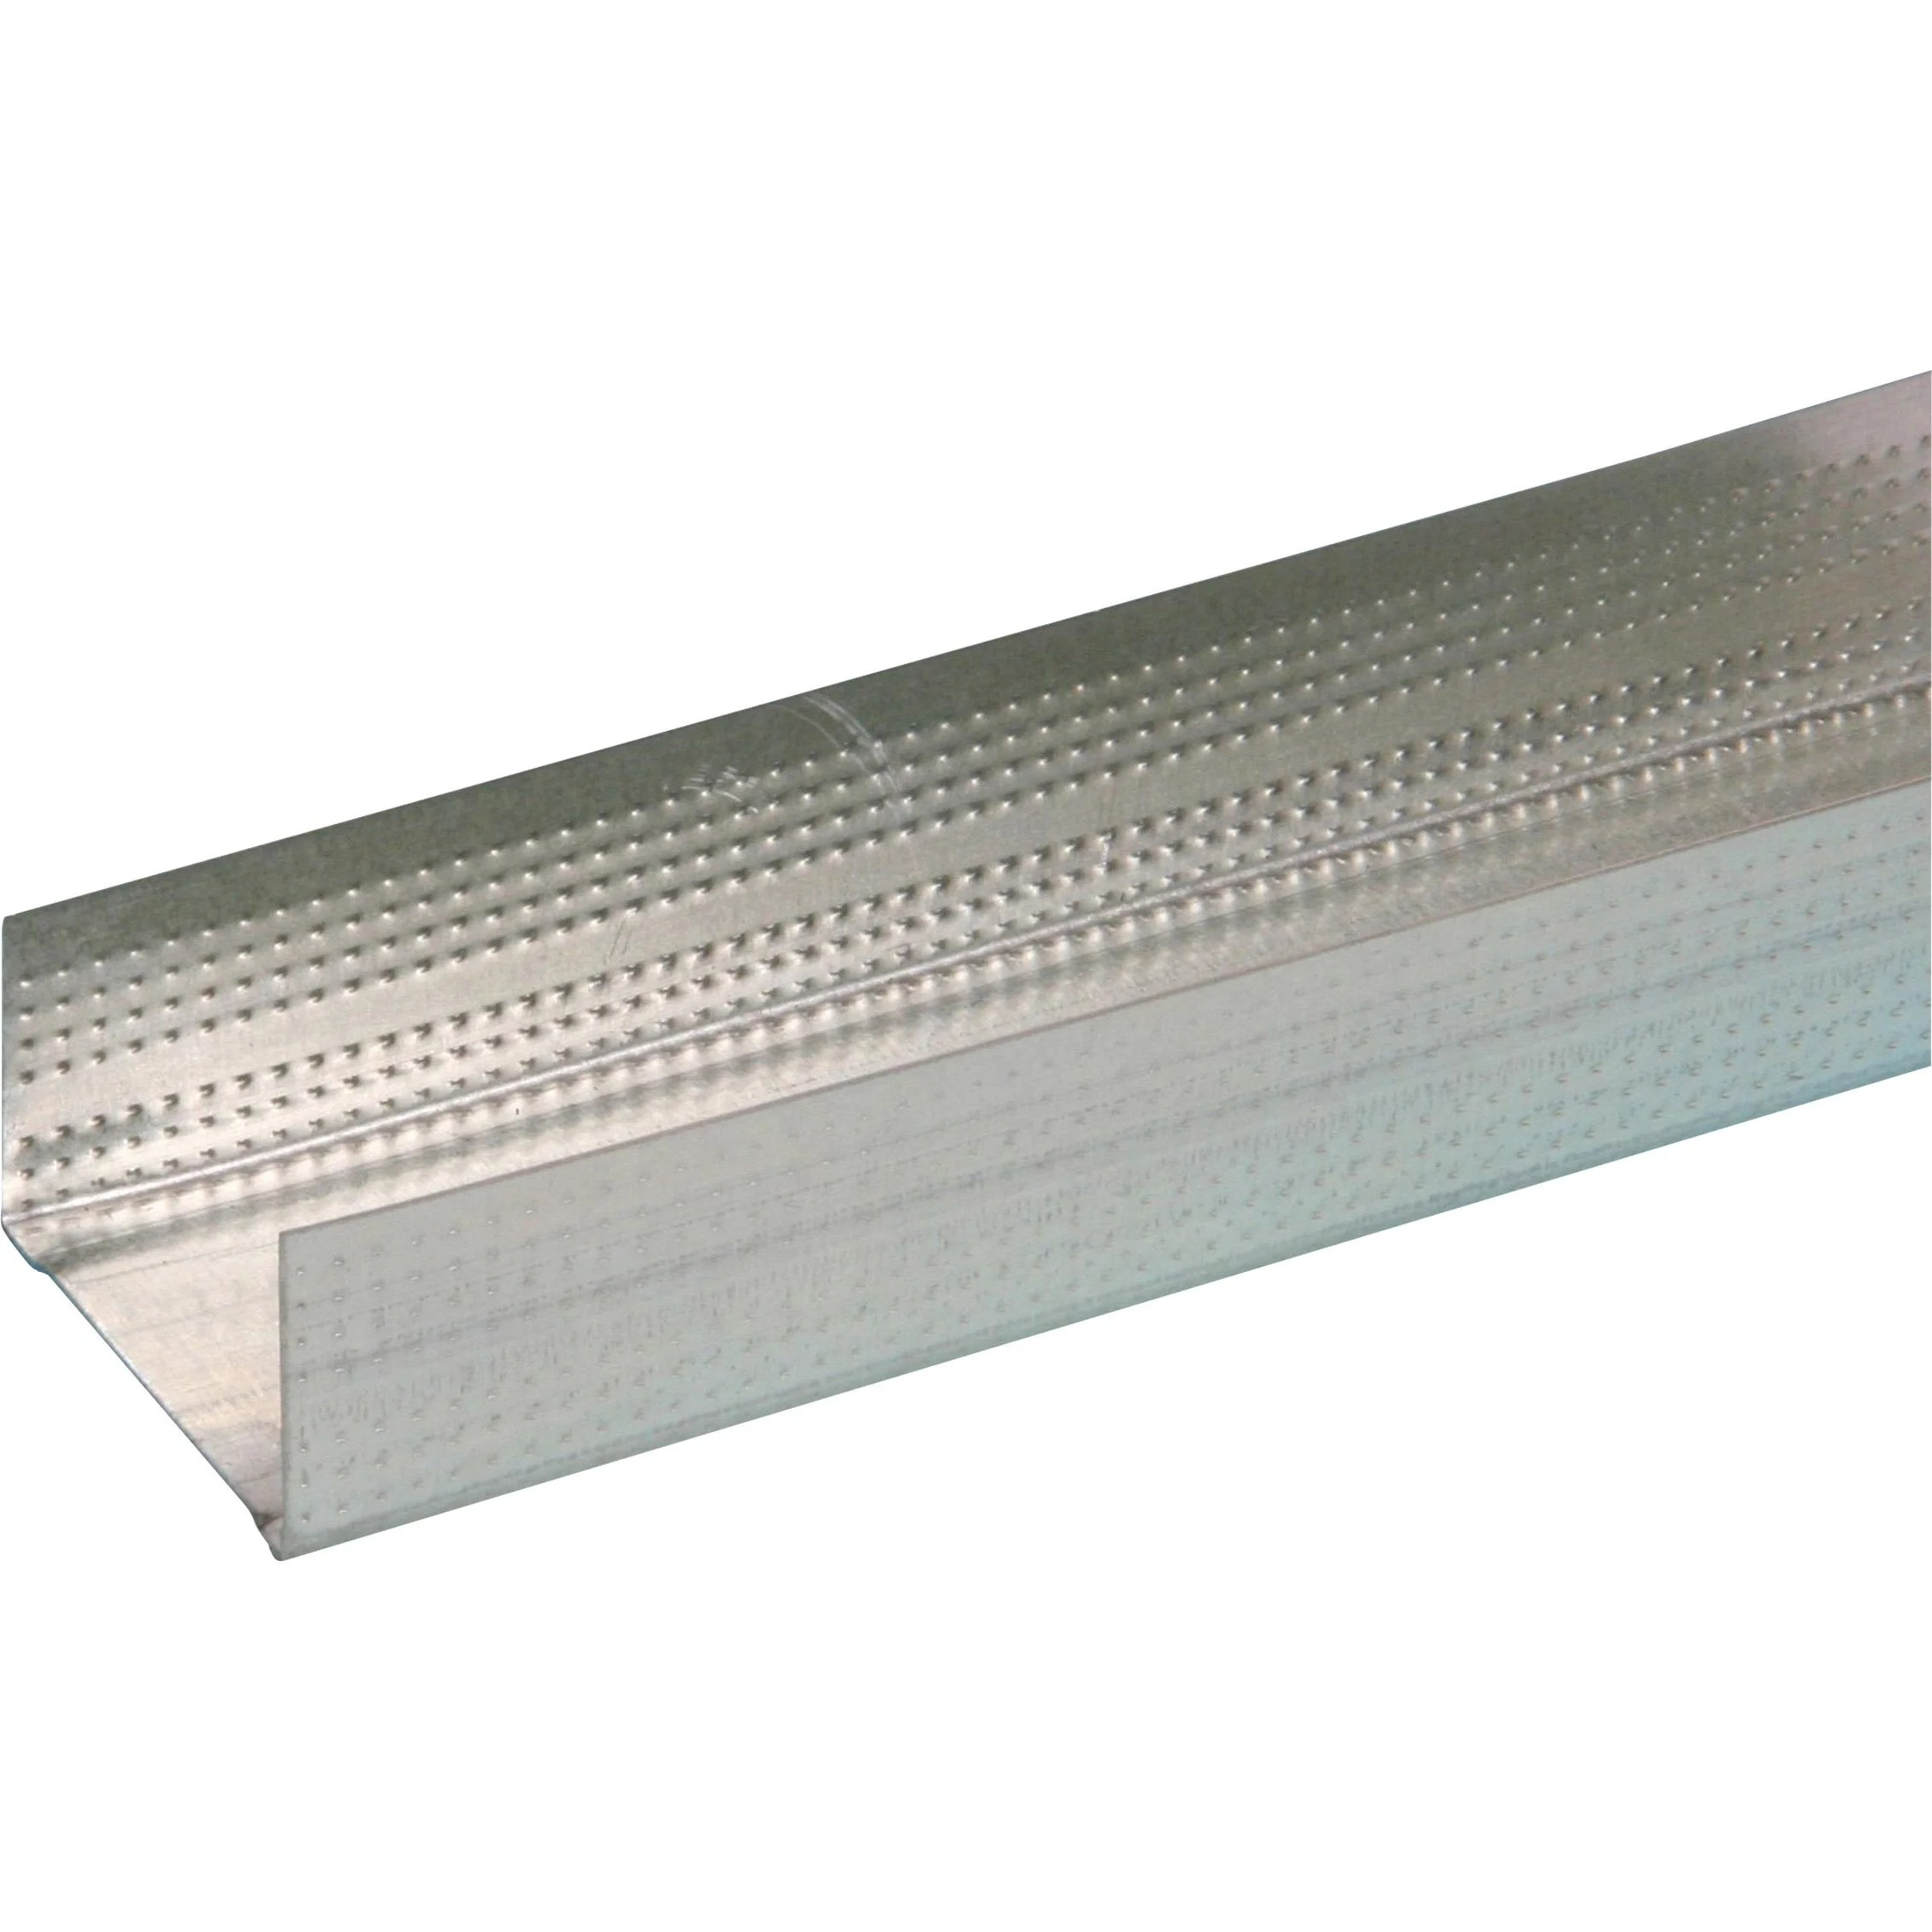 Isolation Exterieur Aluminium Rail De 48 35 Mm Long 3m